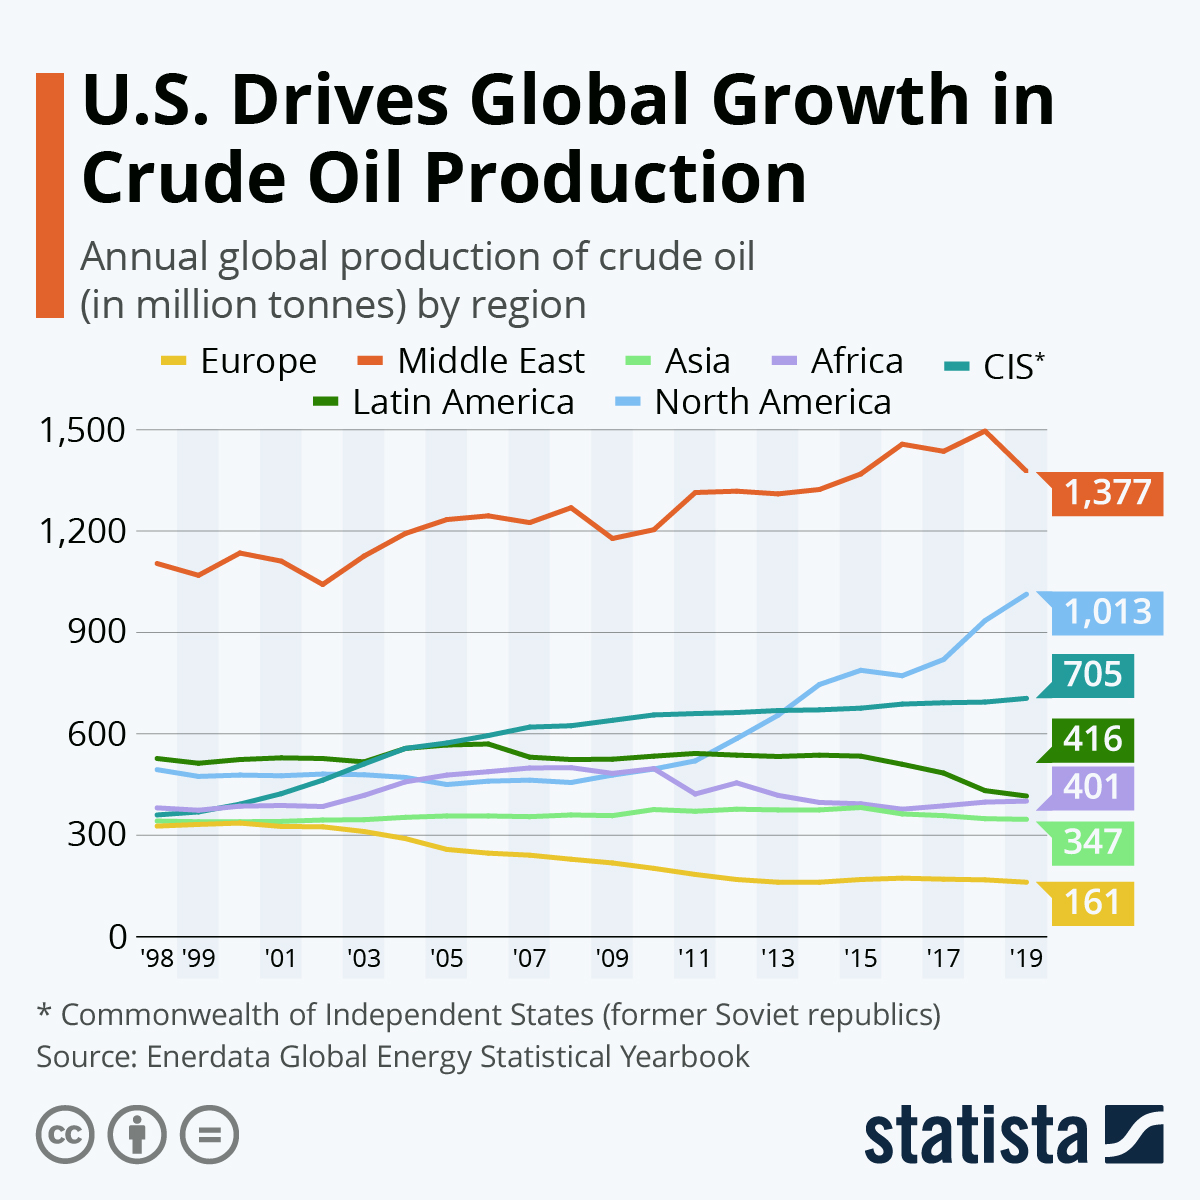 U.S. Drives Global Growth in Crude Oil Production #infographic